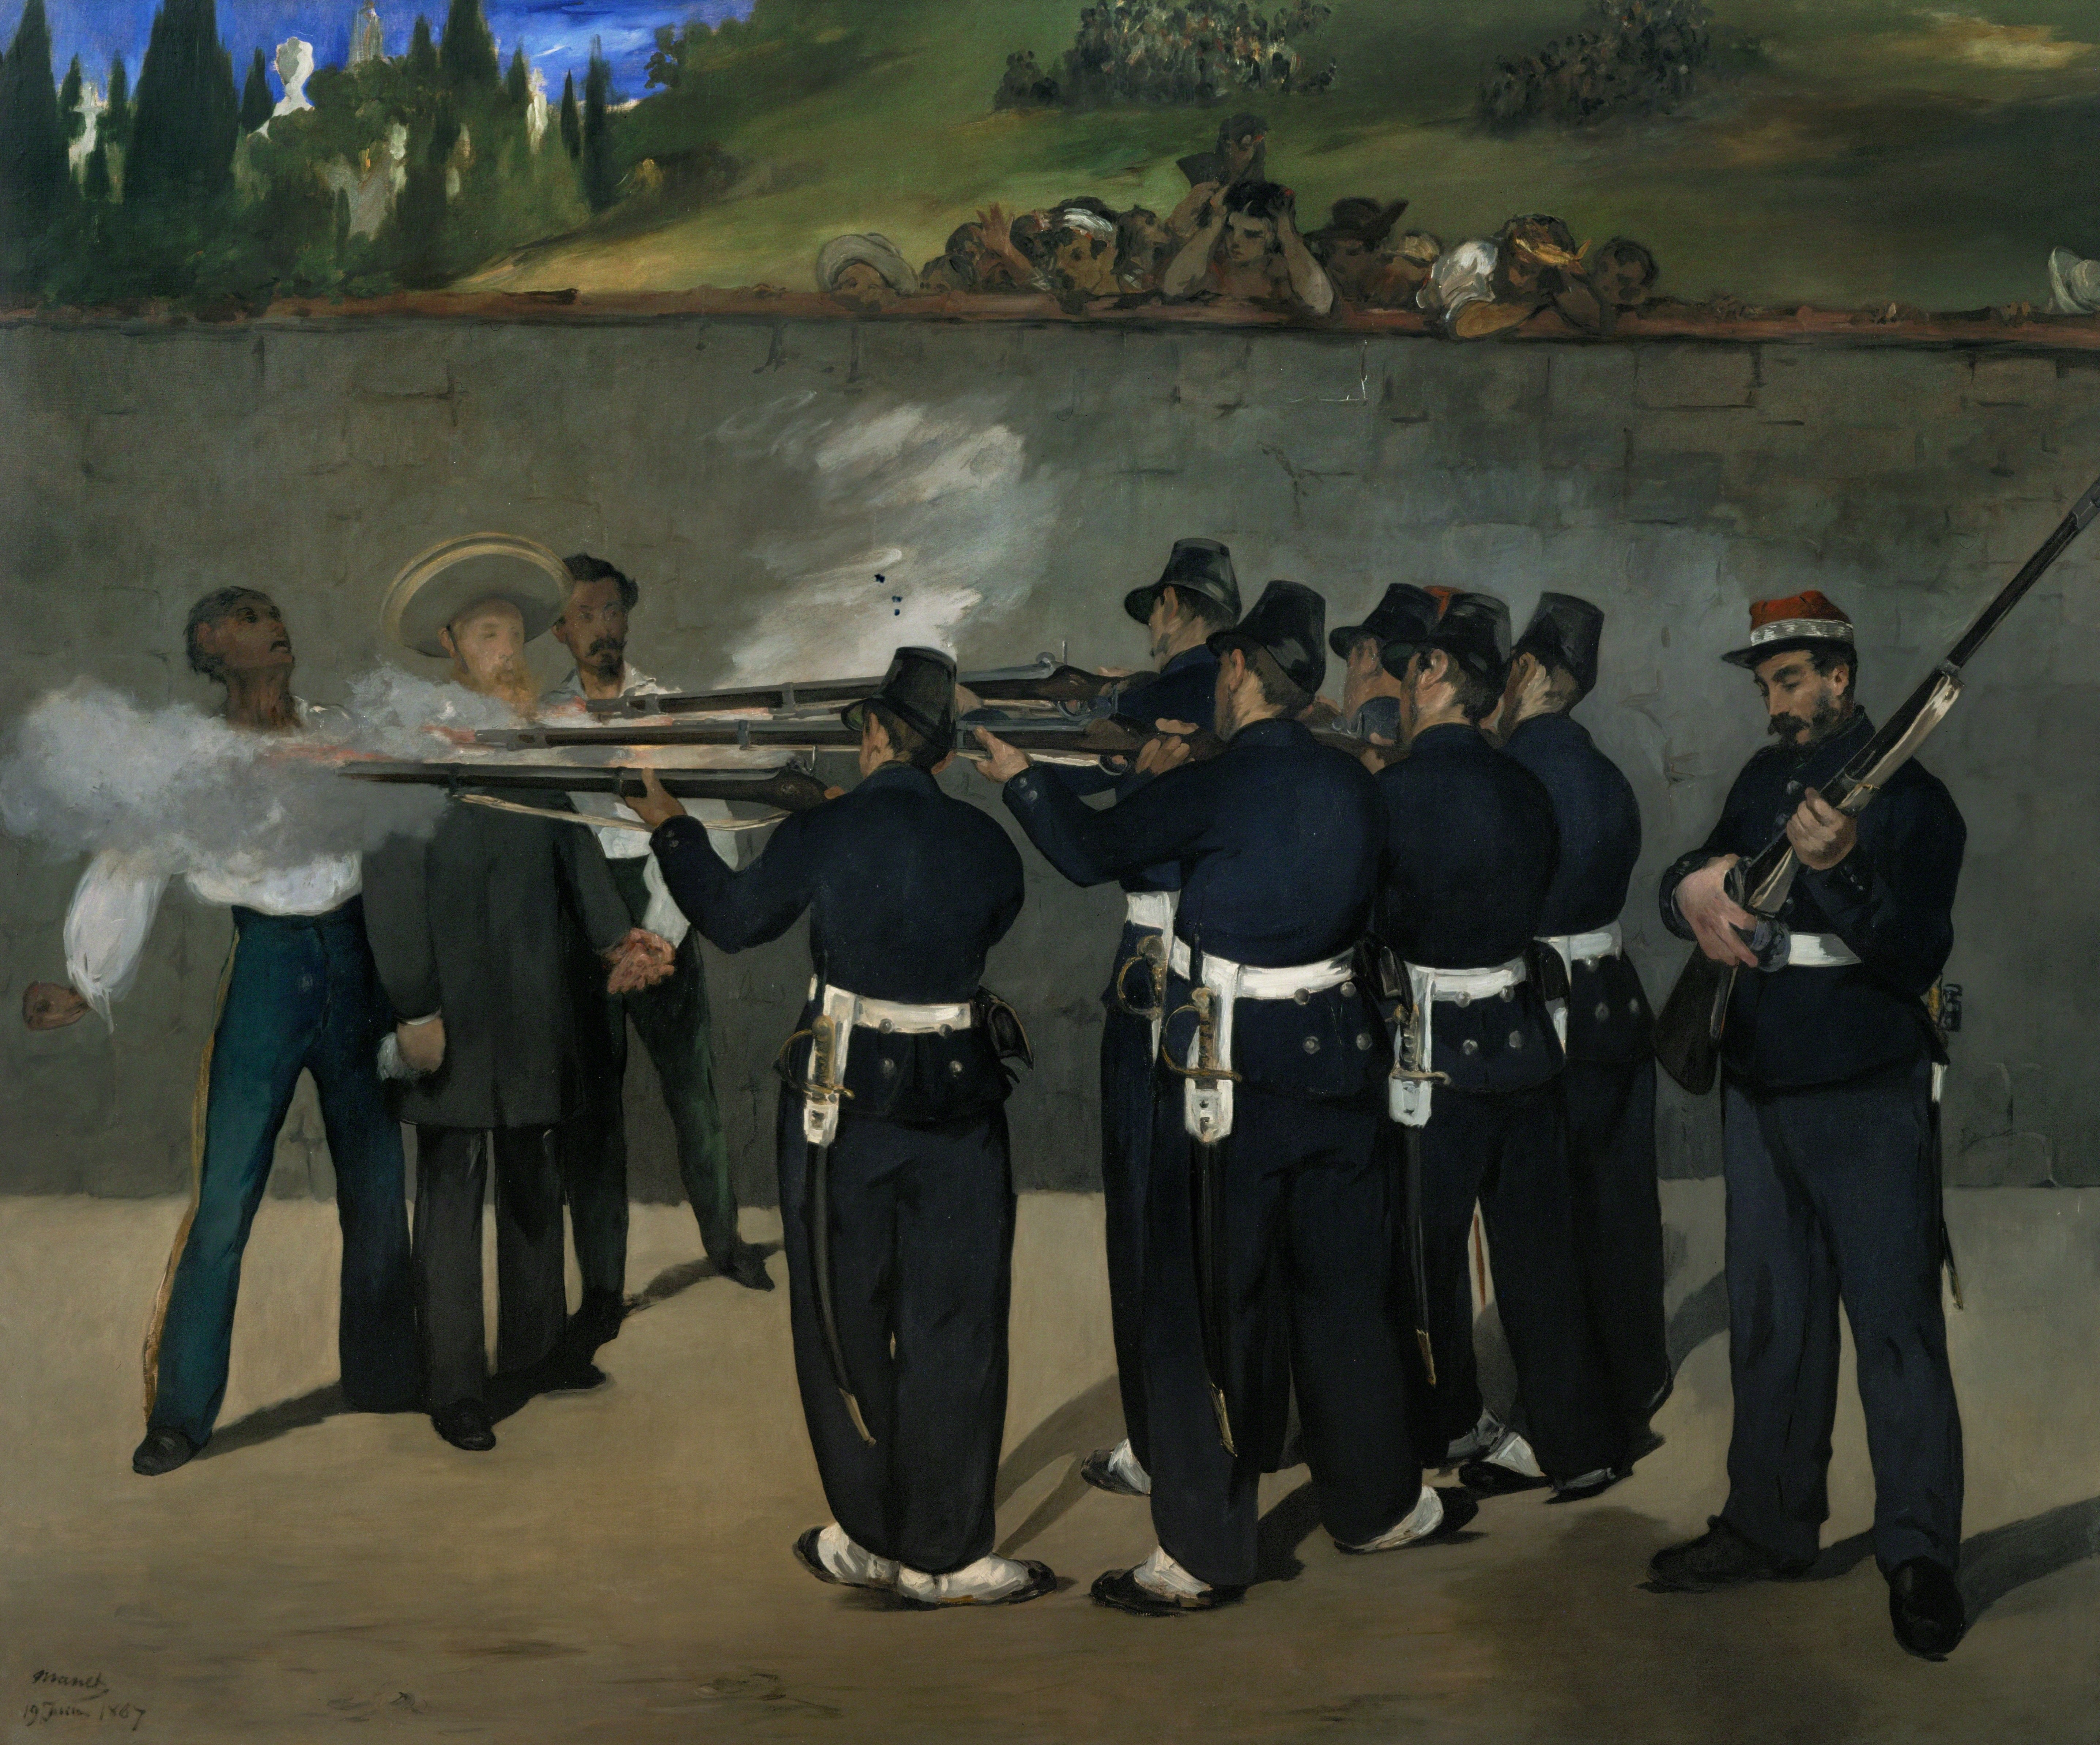 https://upload.wikimedia.org/wikipedia/commons/b/bd/Manet_Maximilian.jpg?uselang=ru